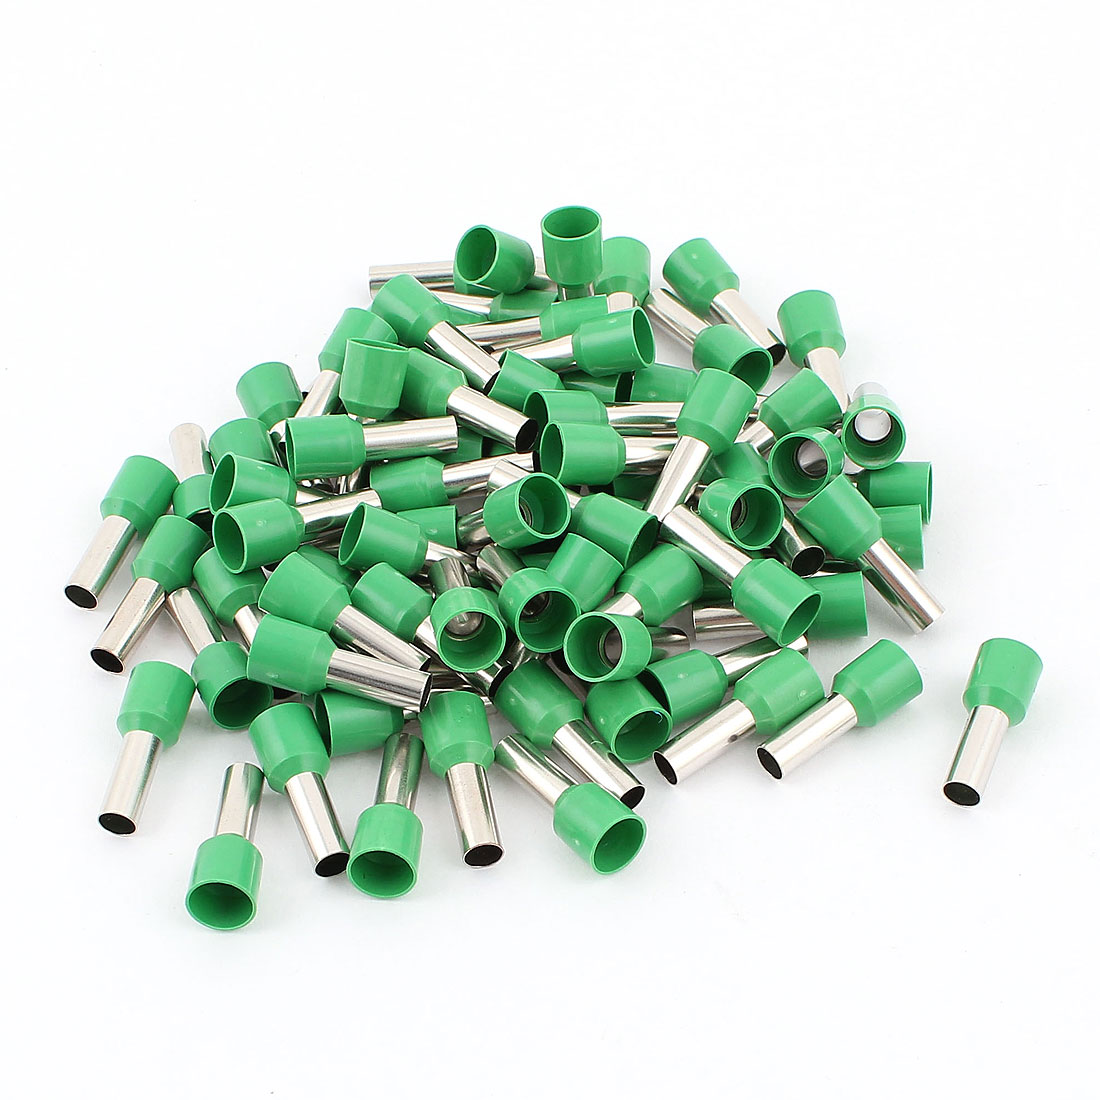 80Pcs E1012 Green Plastic Tube Pre Insulated Bootlace Ferrules Terminals Cable Connector for 8AWG Wire